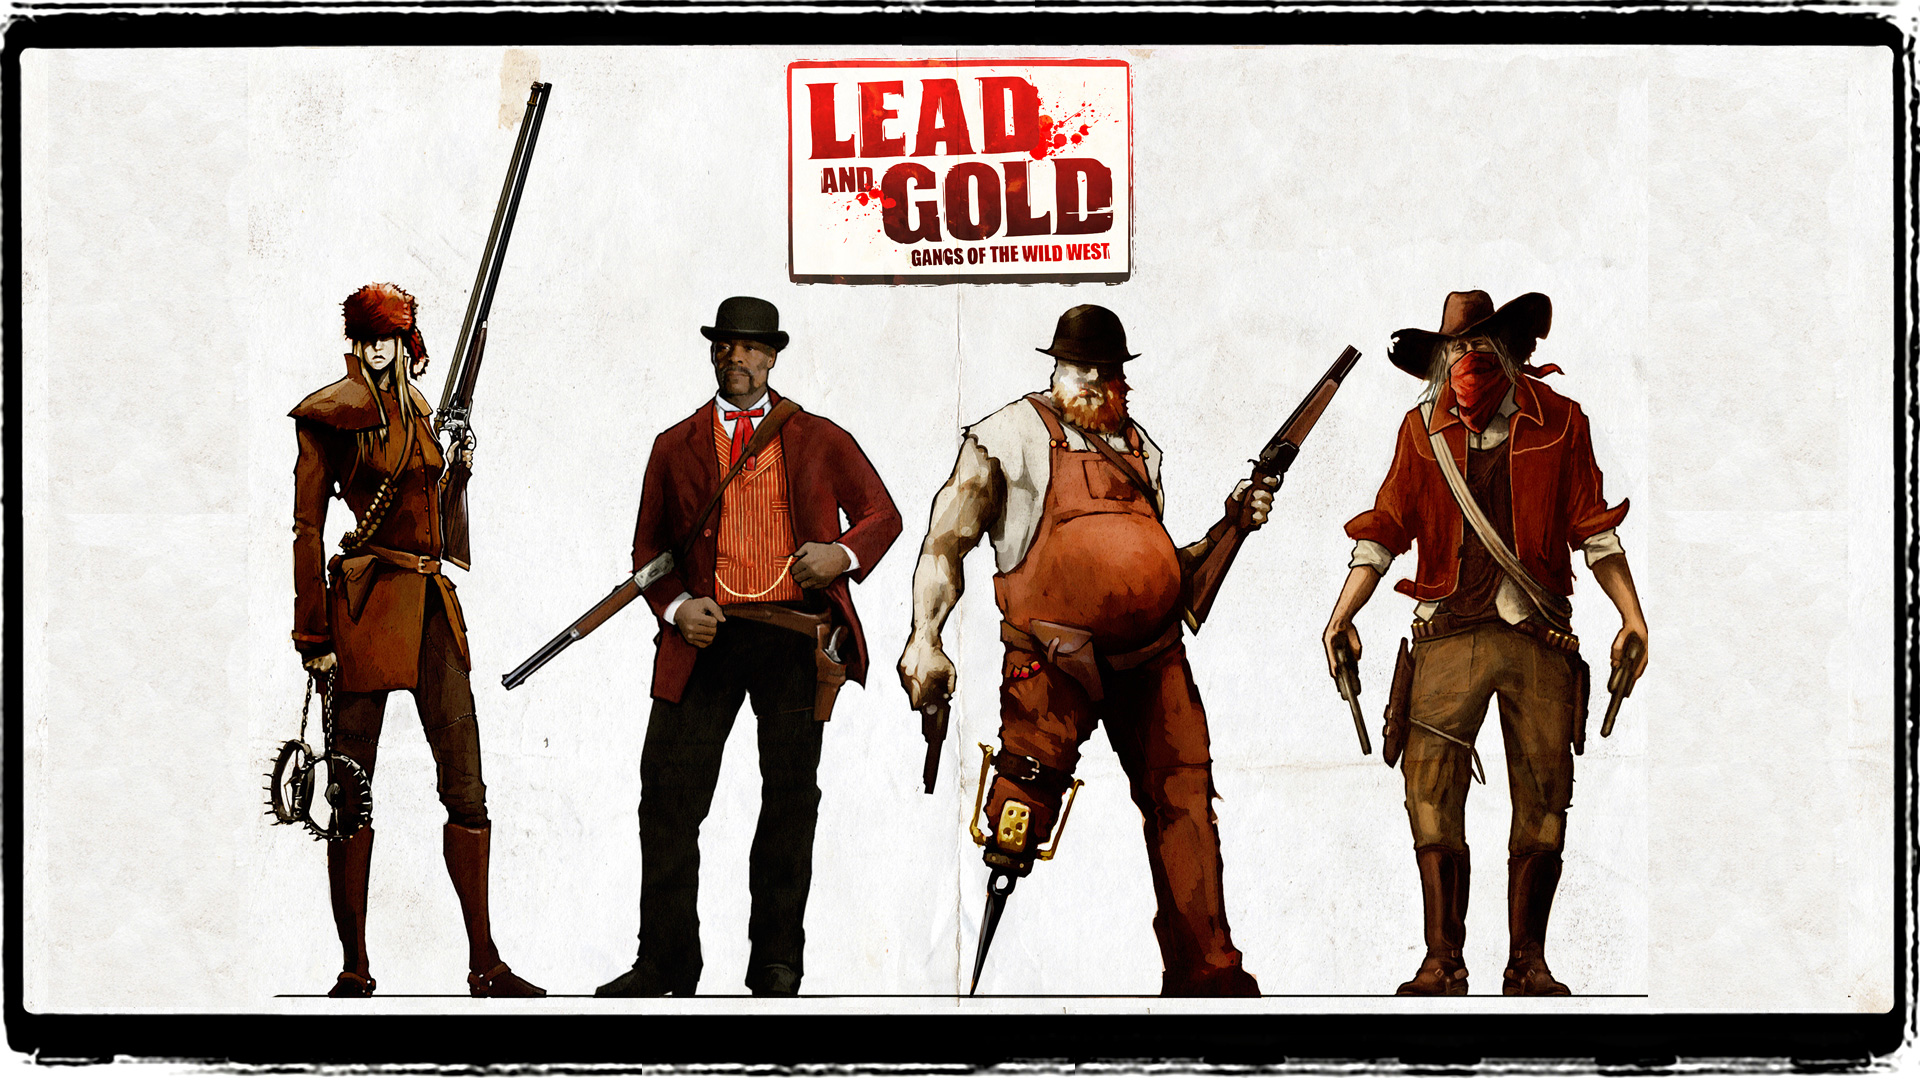 Free Lead and Gold Wallpaper in 1920x1080